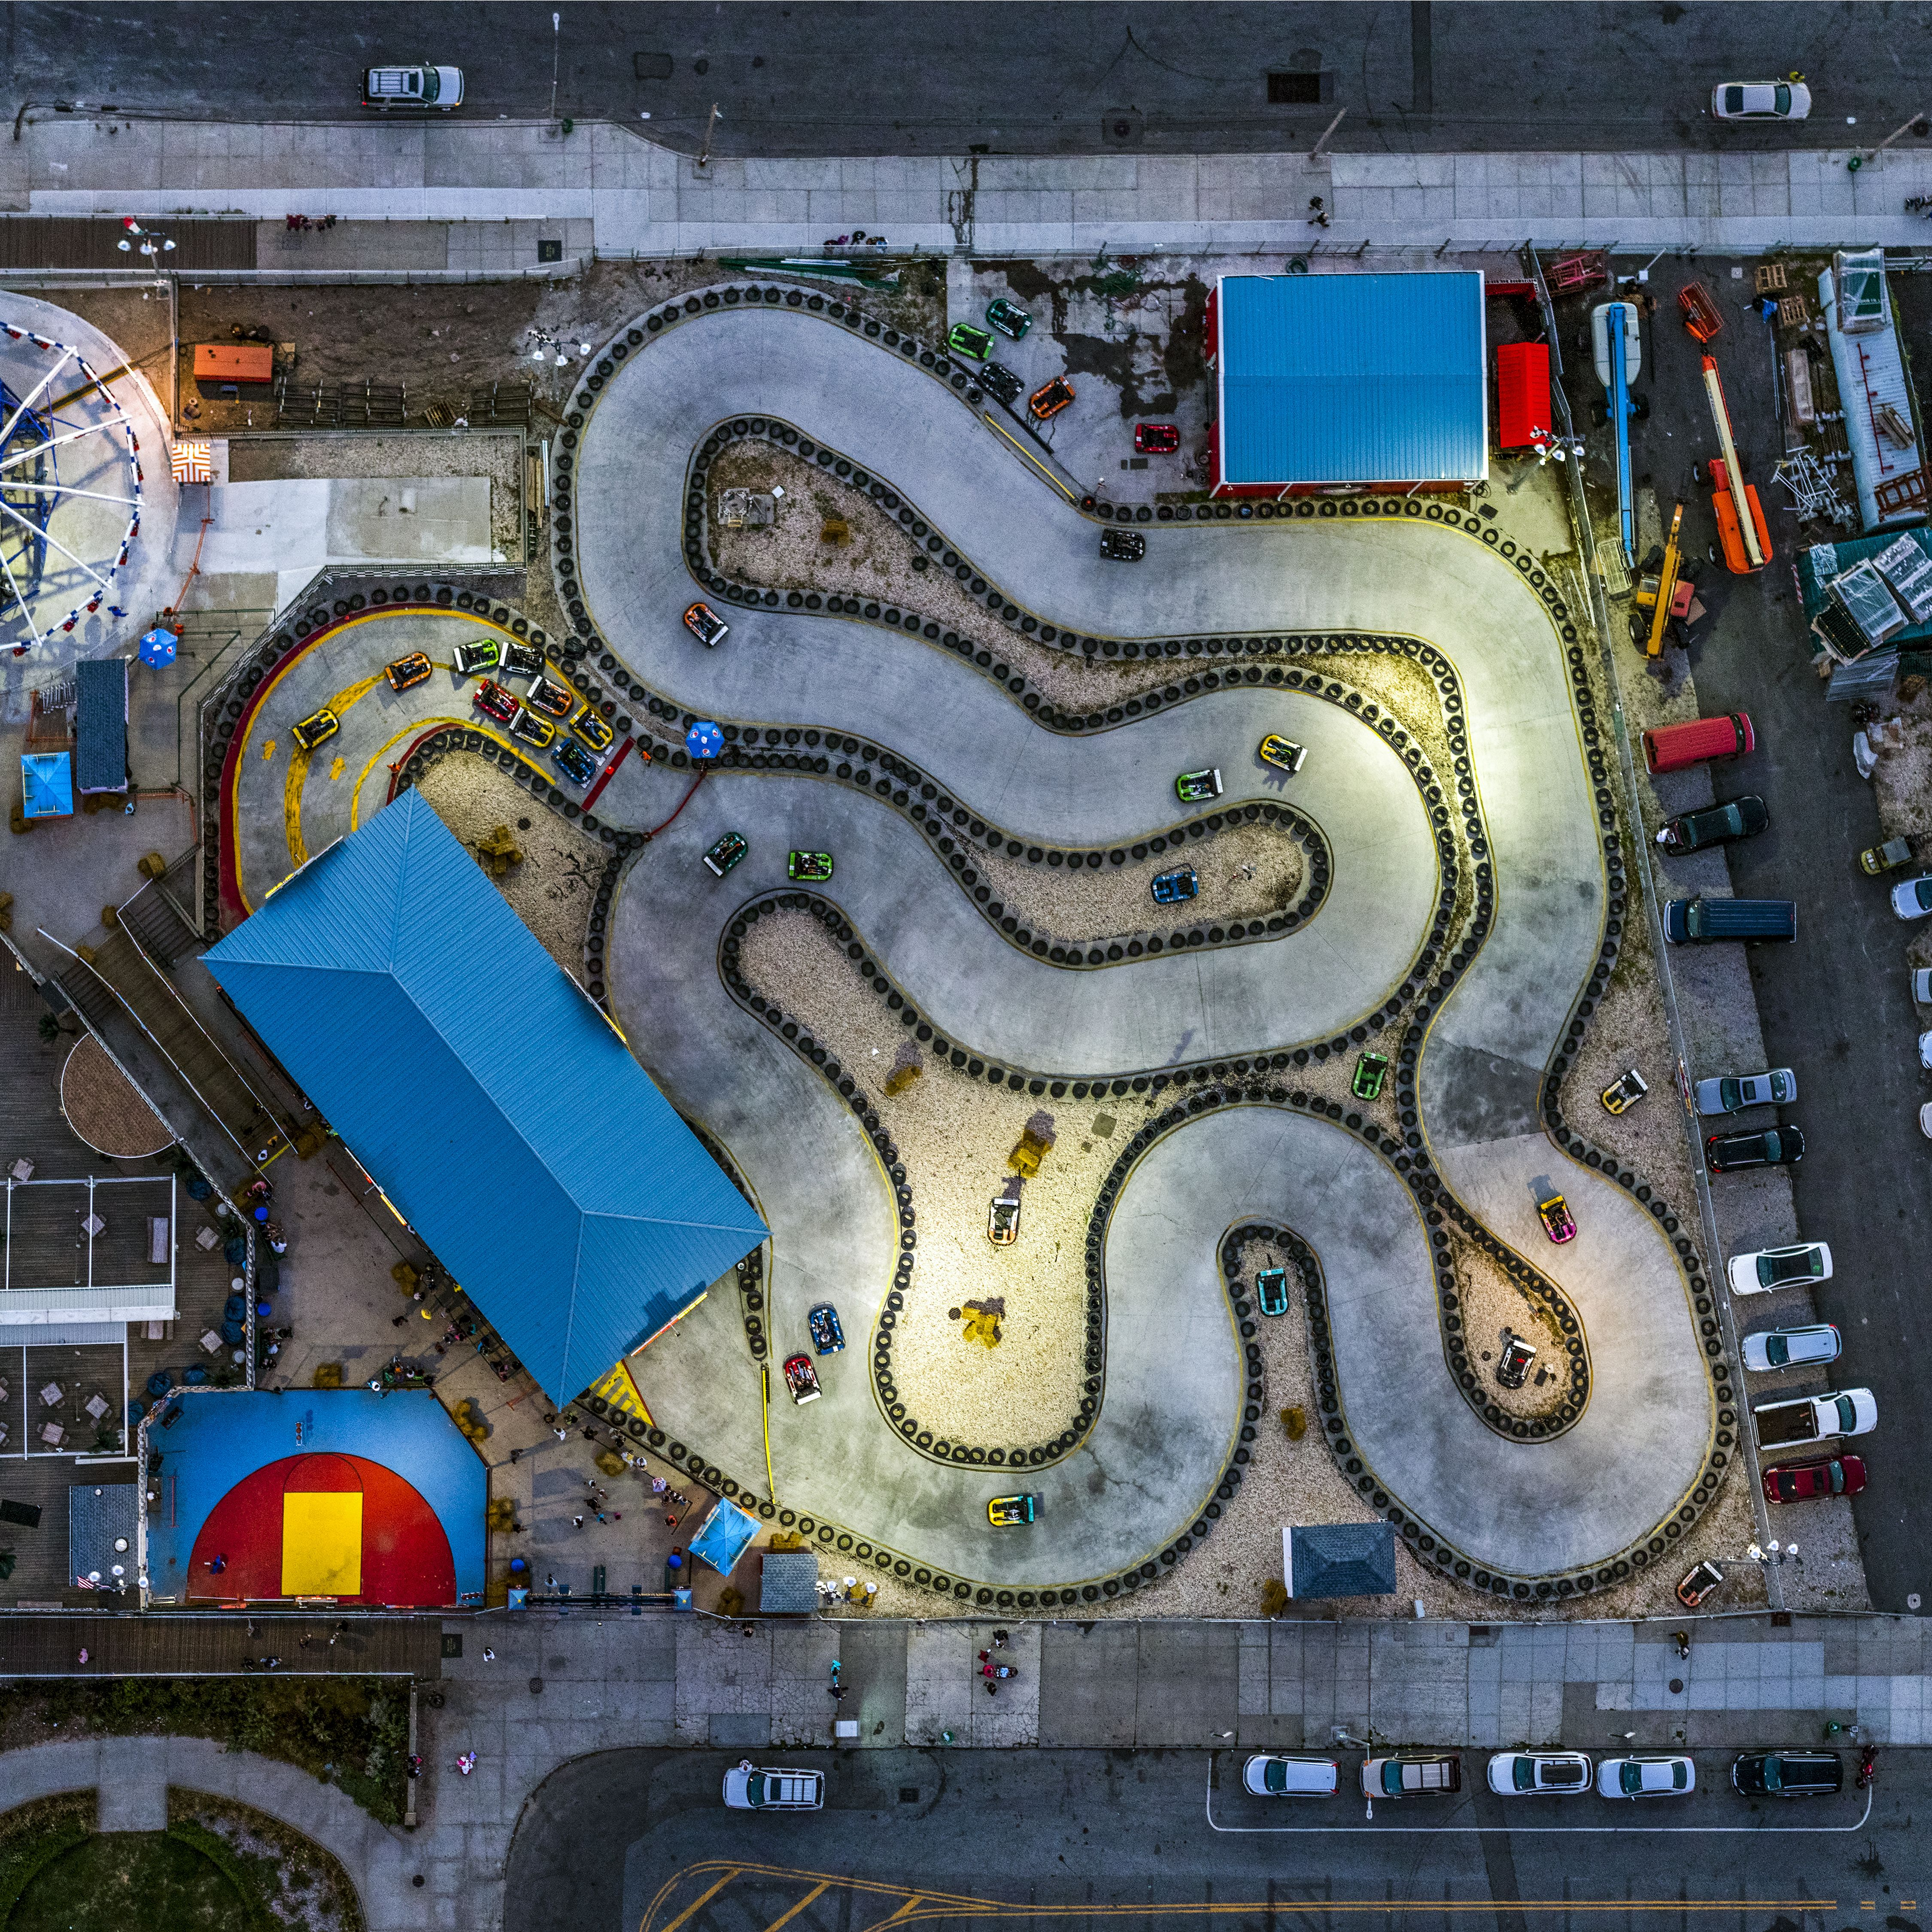 Coney Island go-kart race track, Brooklyn, New York City